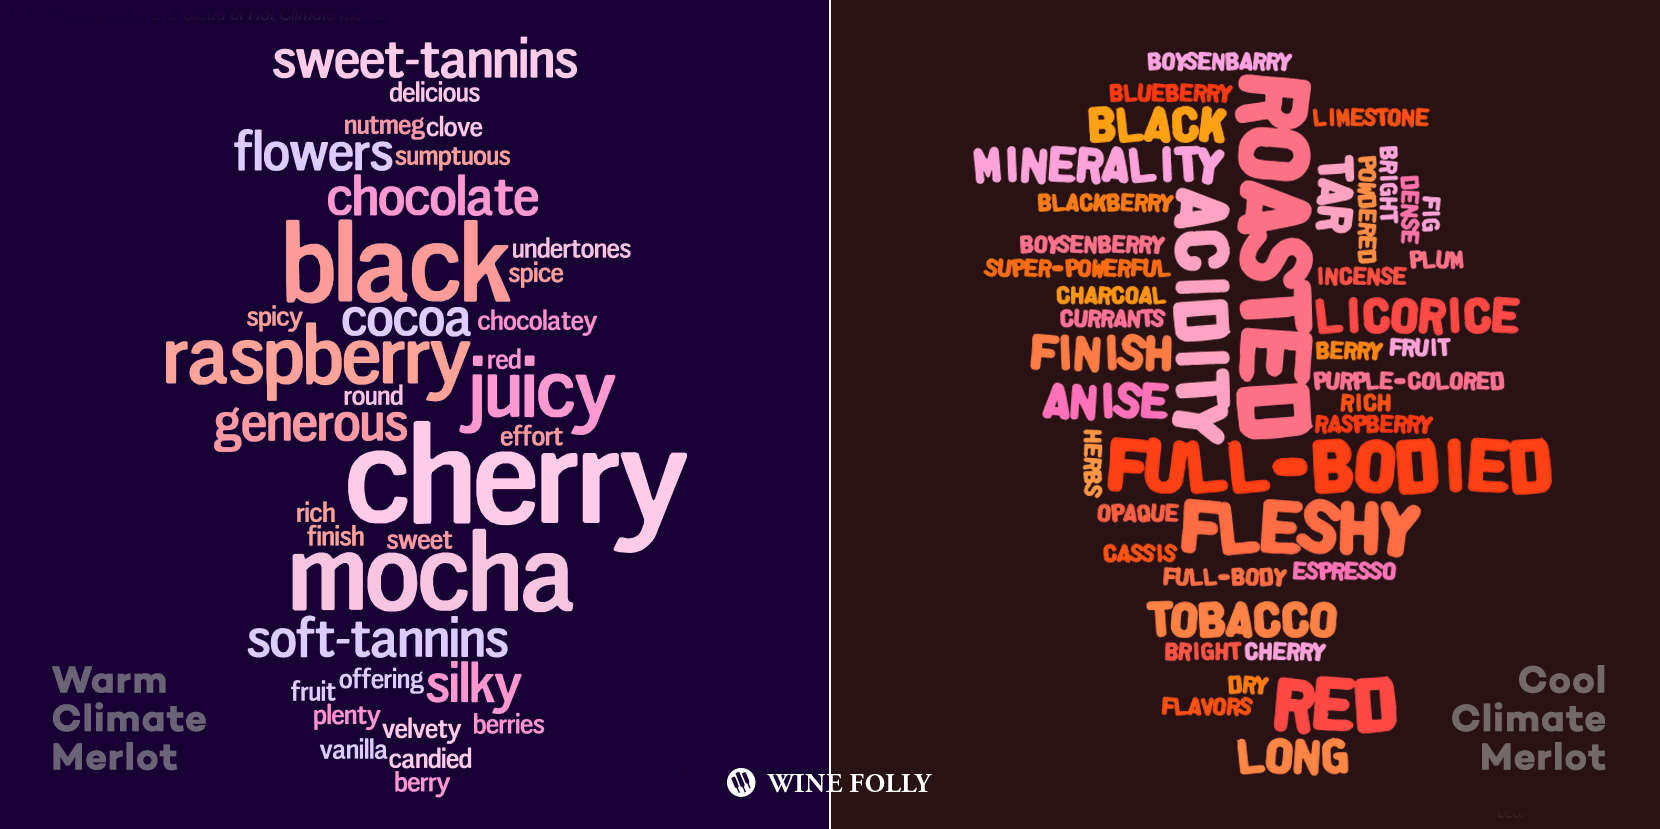 warm-climate-vs-cool-climate-merlot-flavors-word-cloud